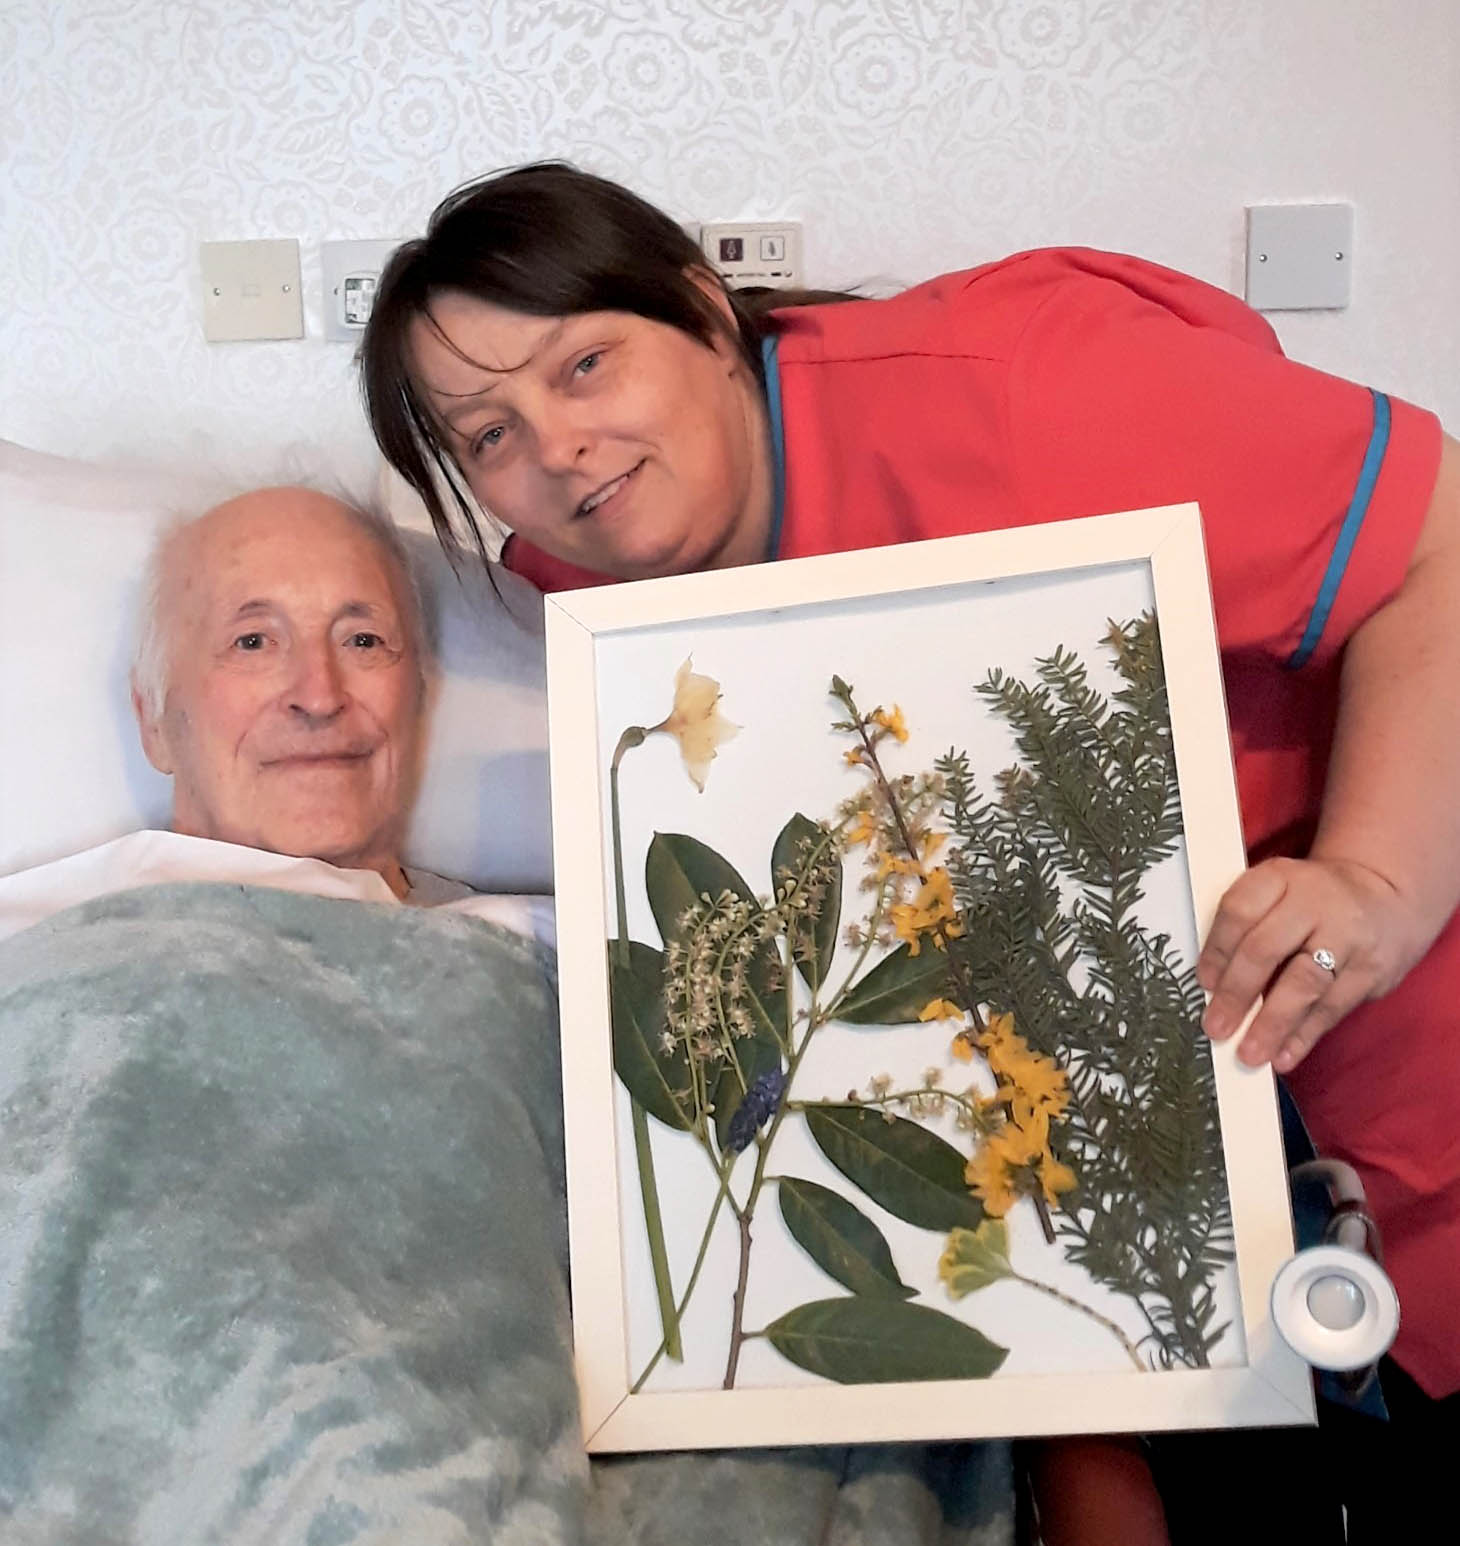 Residents at Woodbury House are getting closer to nature with 'season frames'